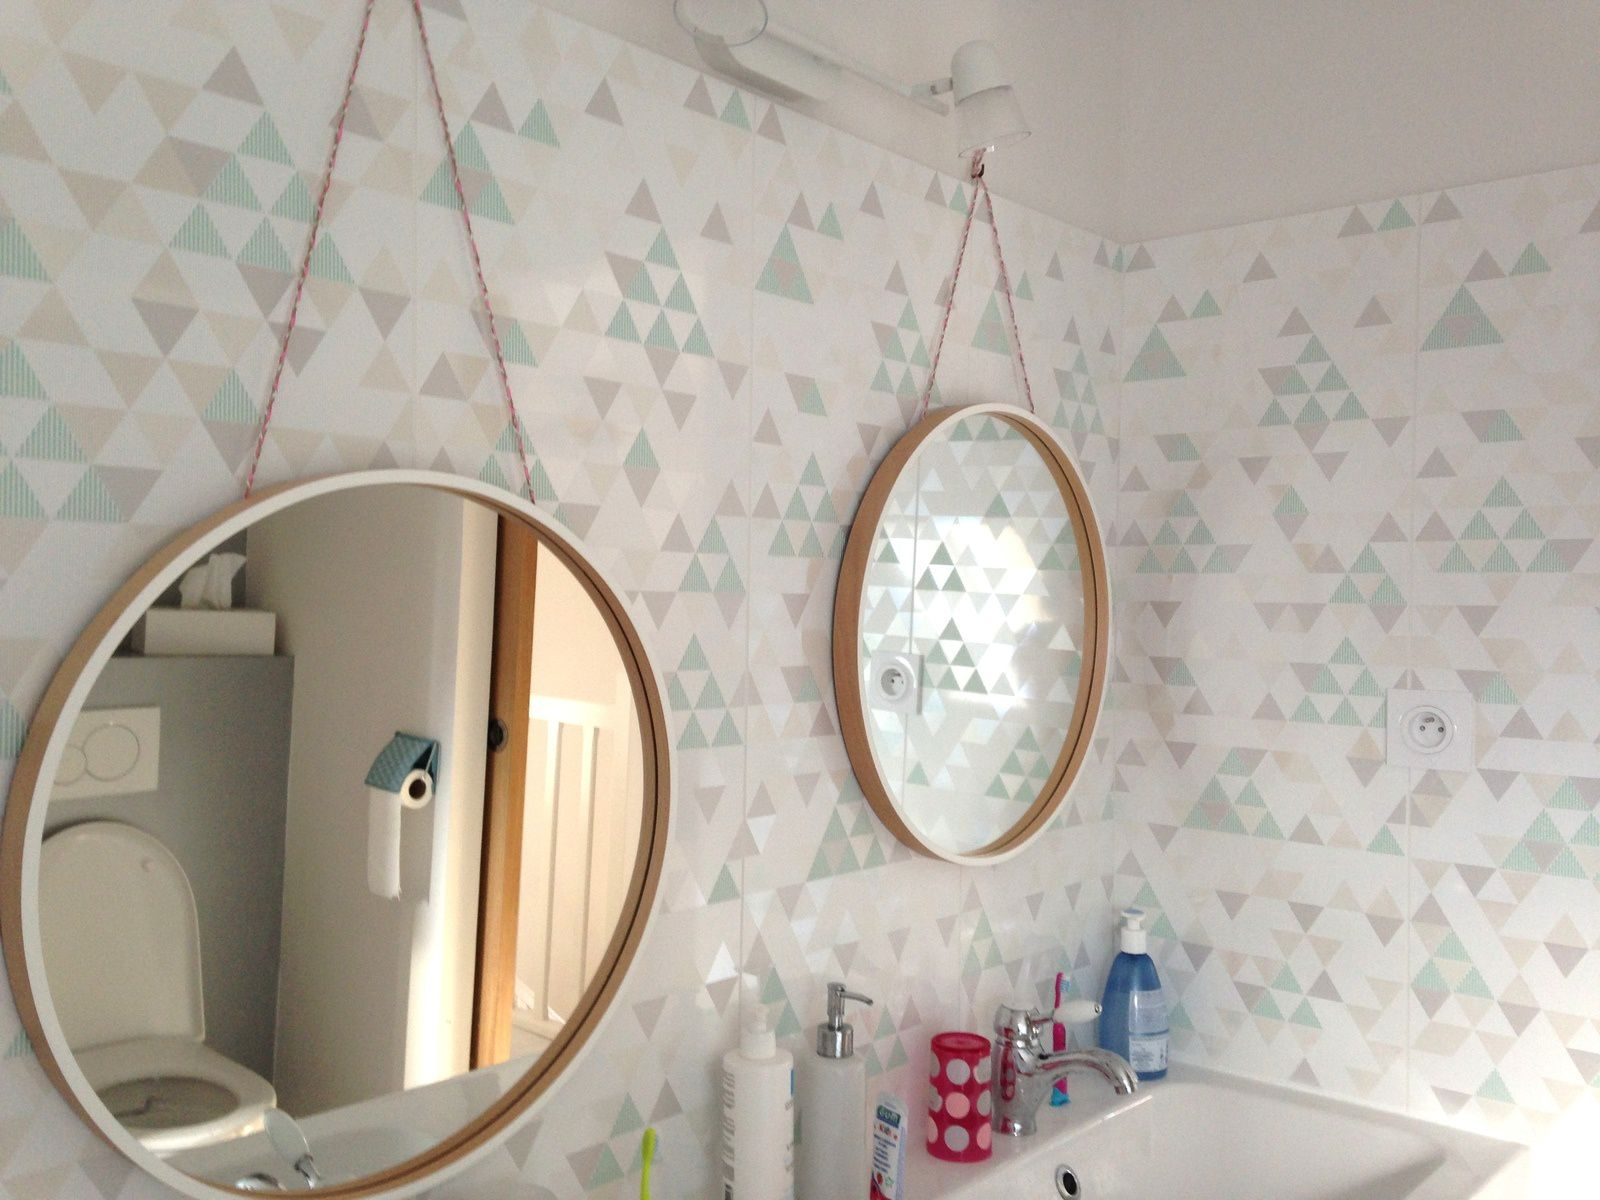 #maison #salledebain 3decoration #charlotteblabla blog*